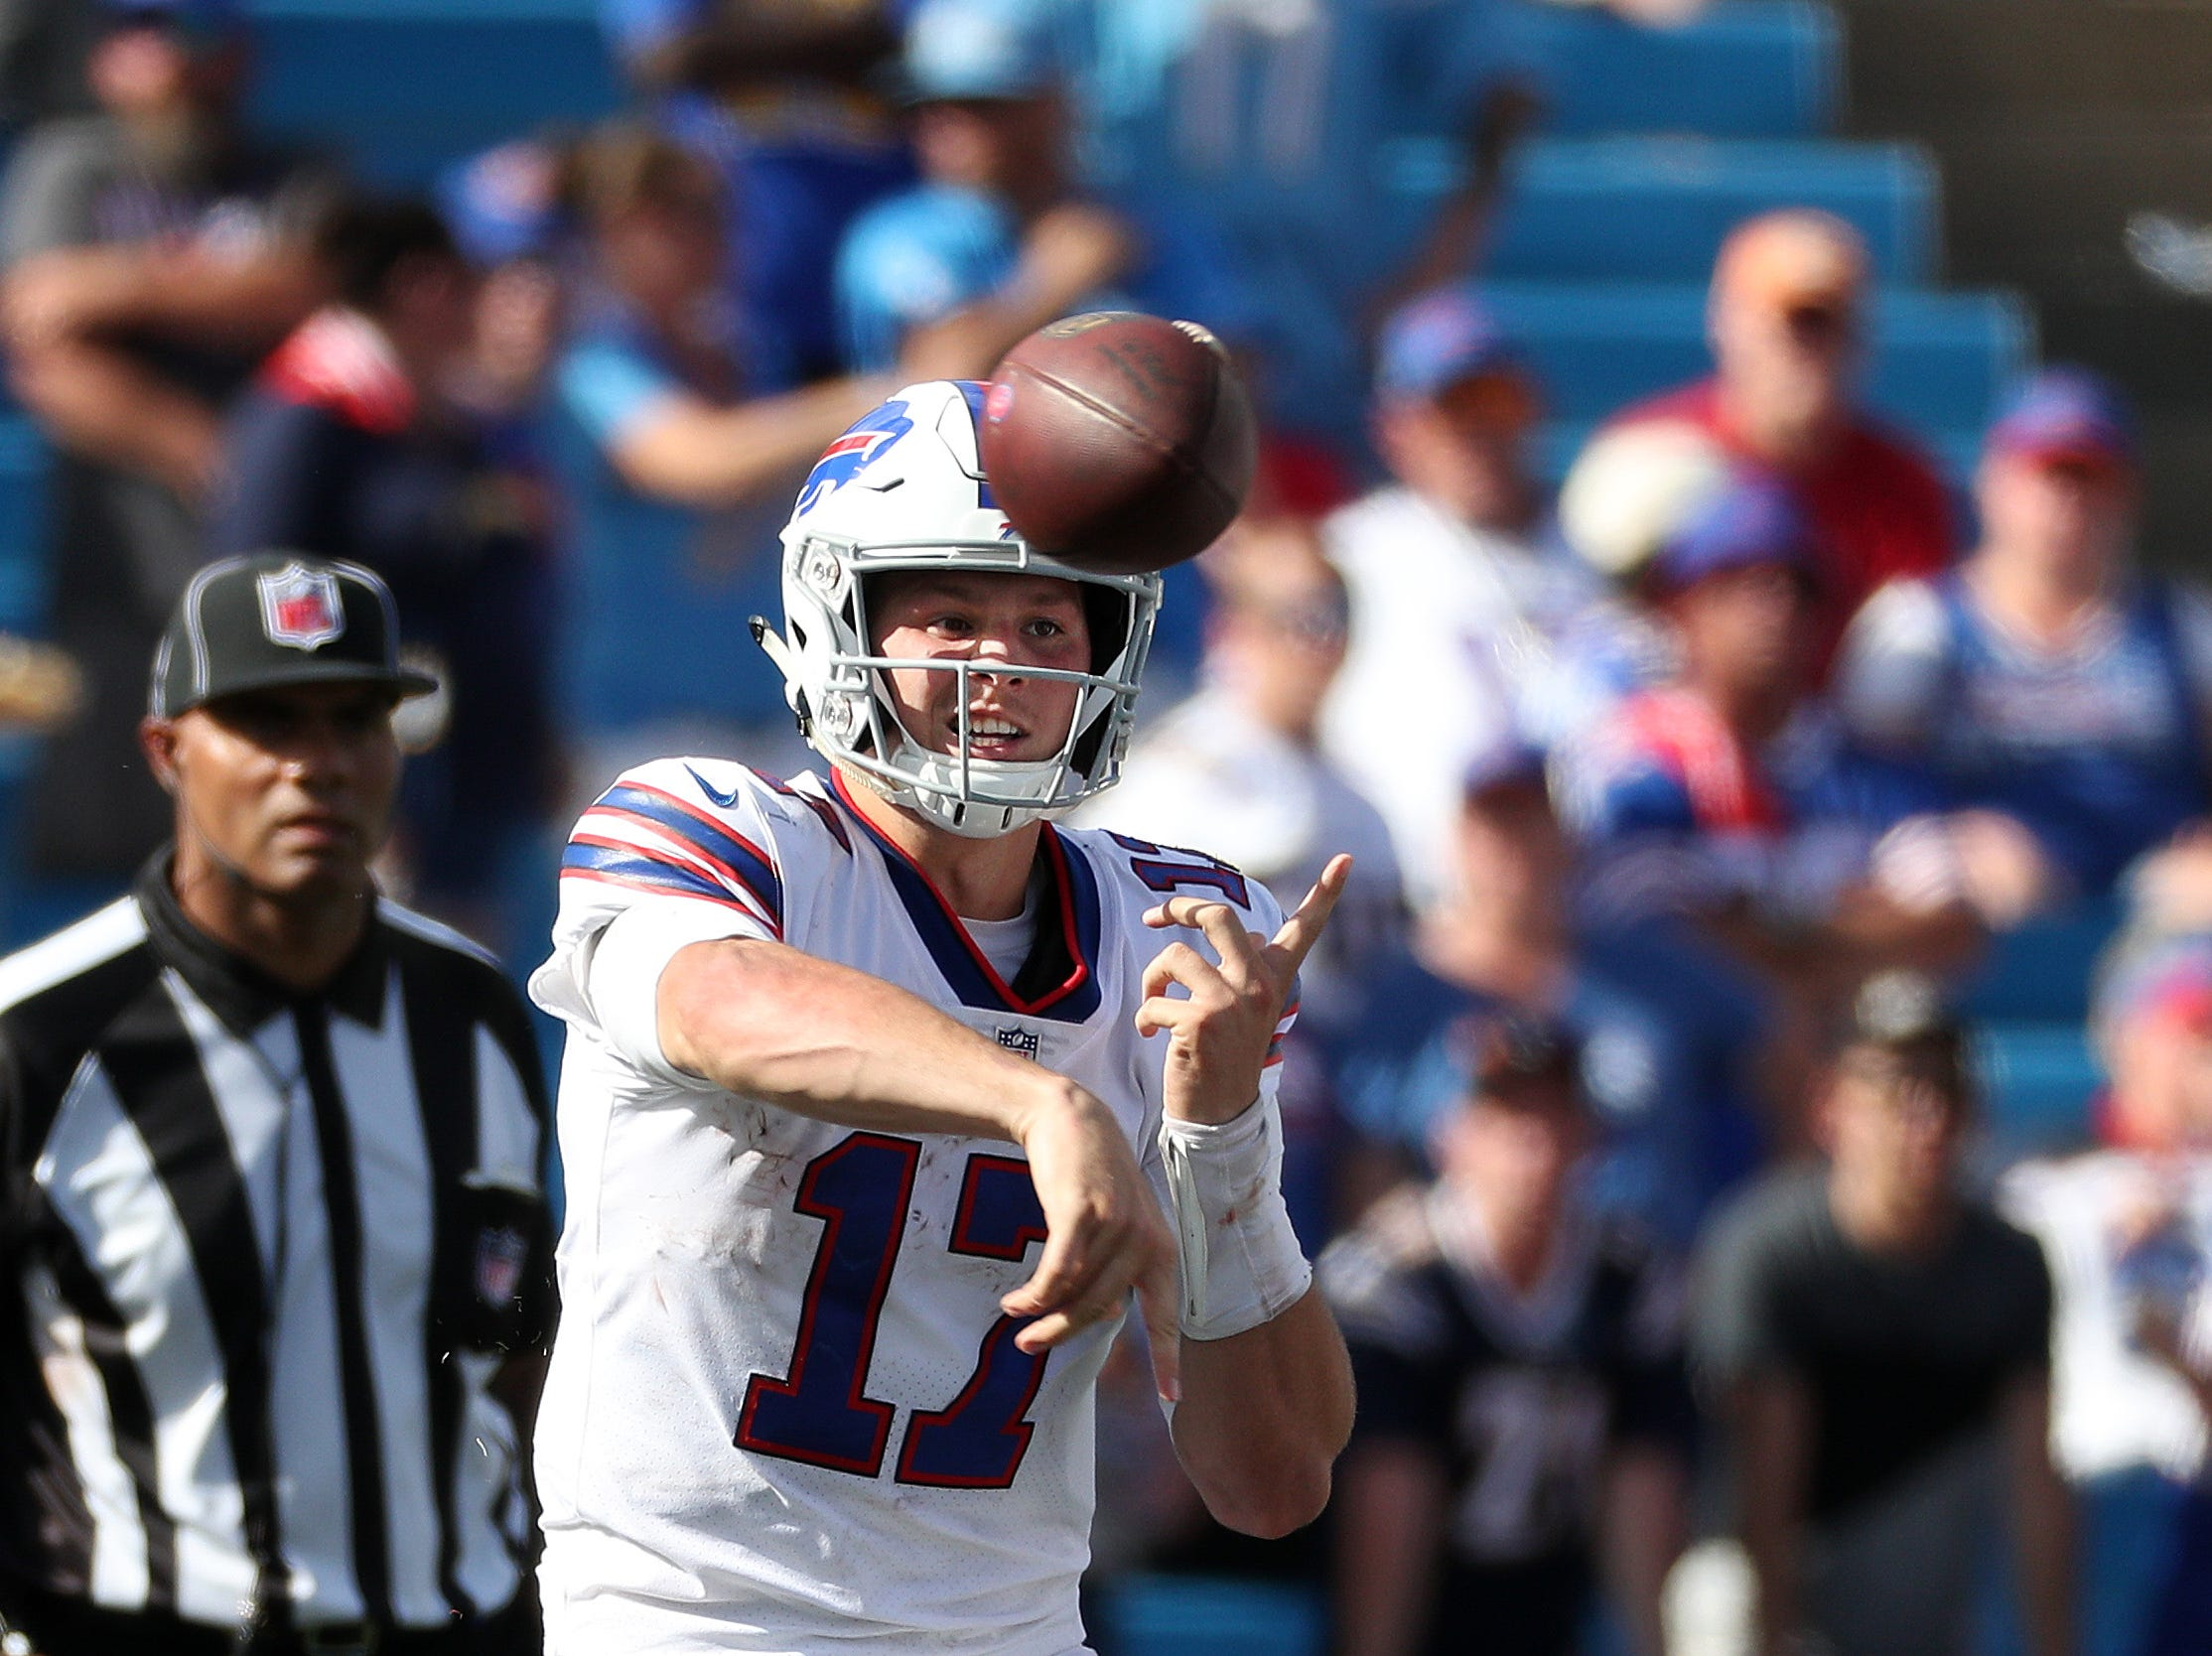 Bills quarterback Josh Allen delivers a pass over the middle.  The Bills lost 31-20 to the Chargers in his NFL debut.